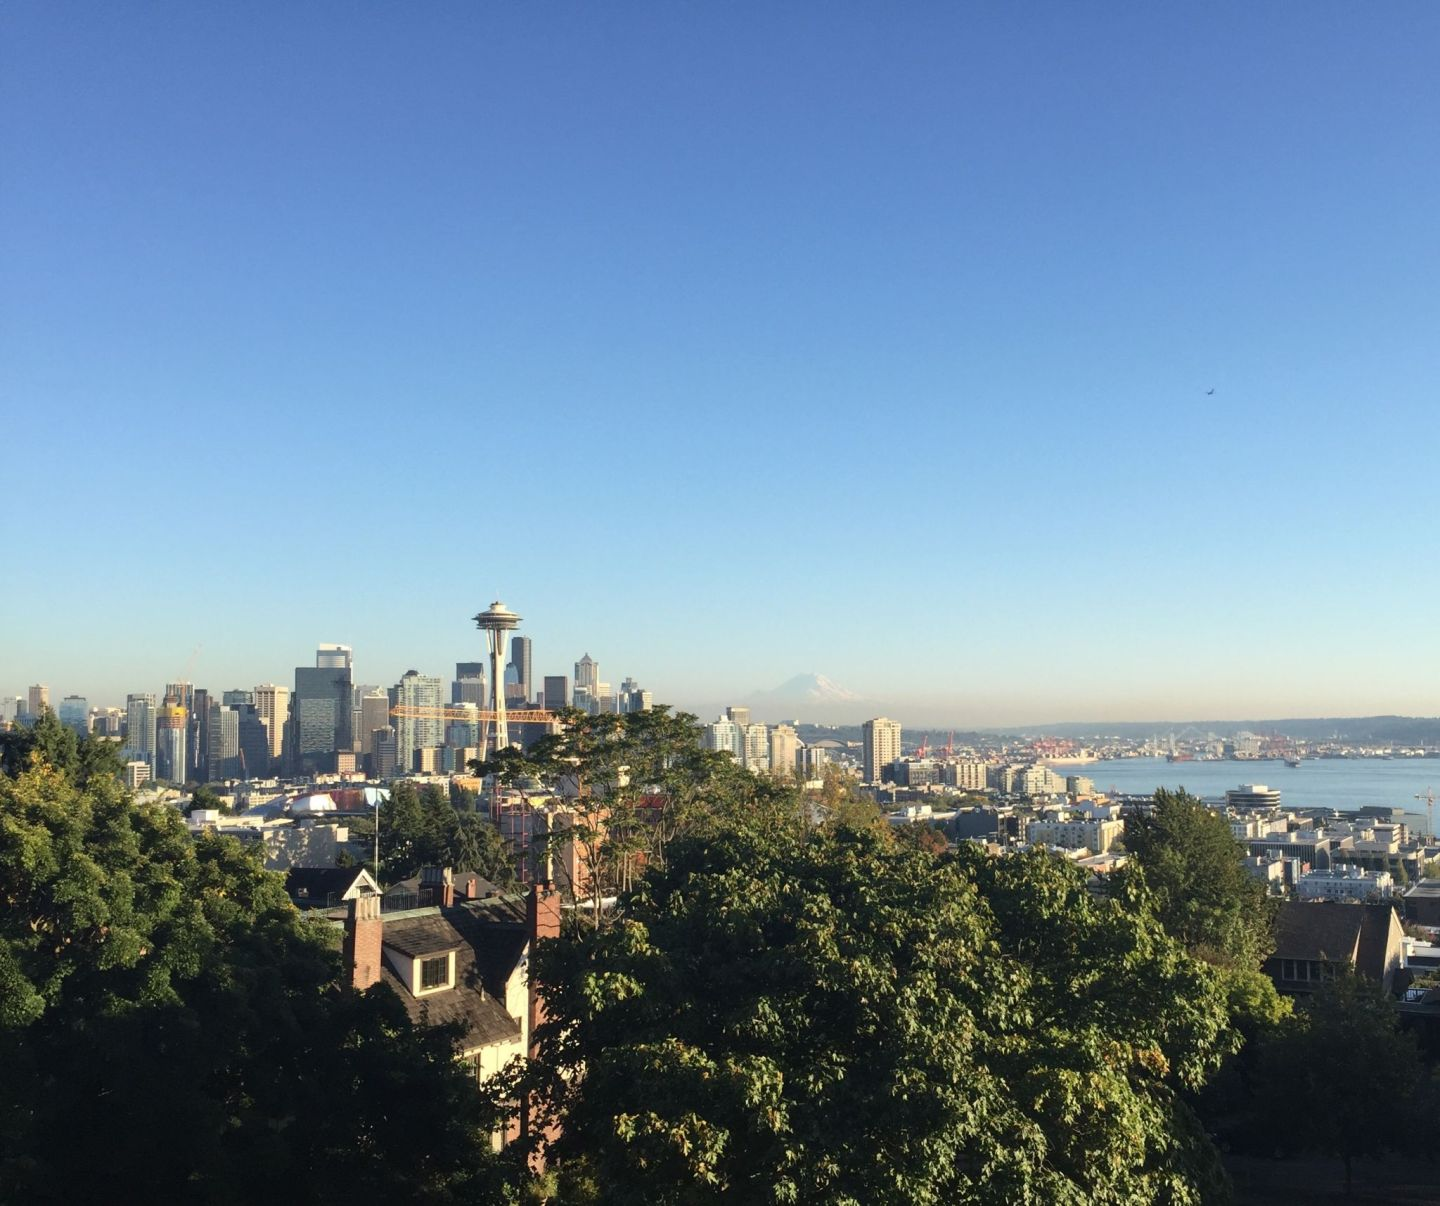 Kerry Park, Seattle